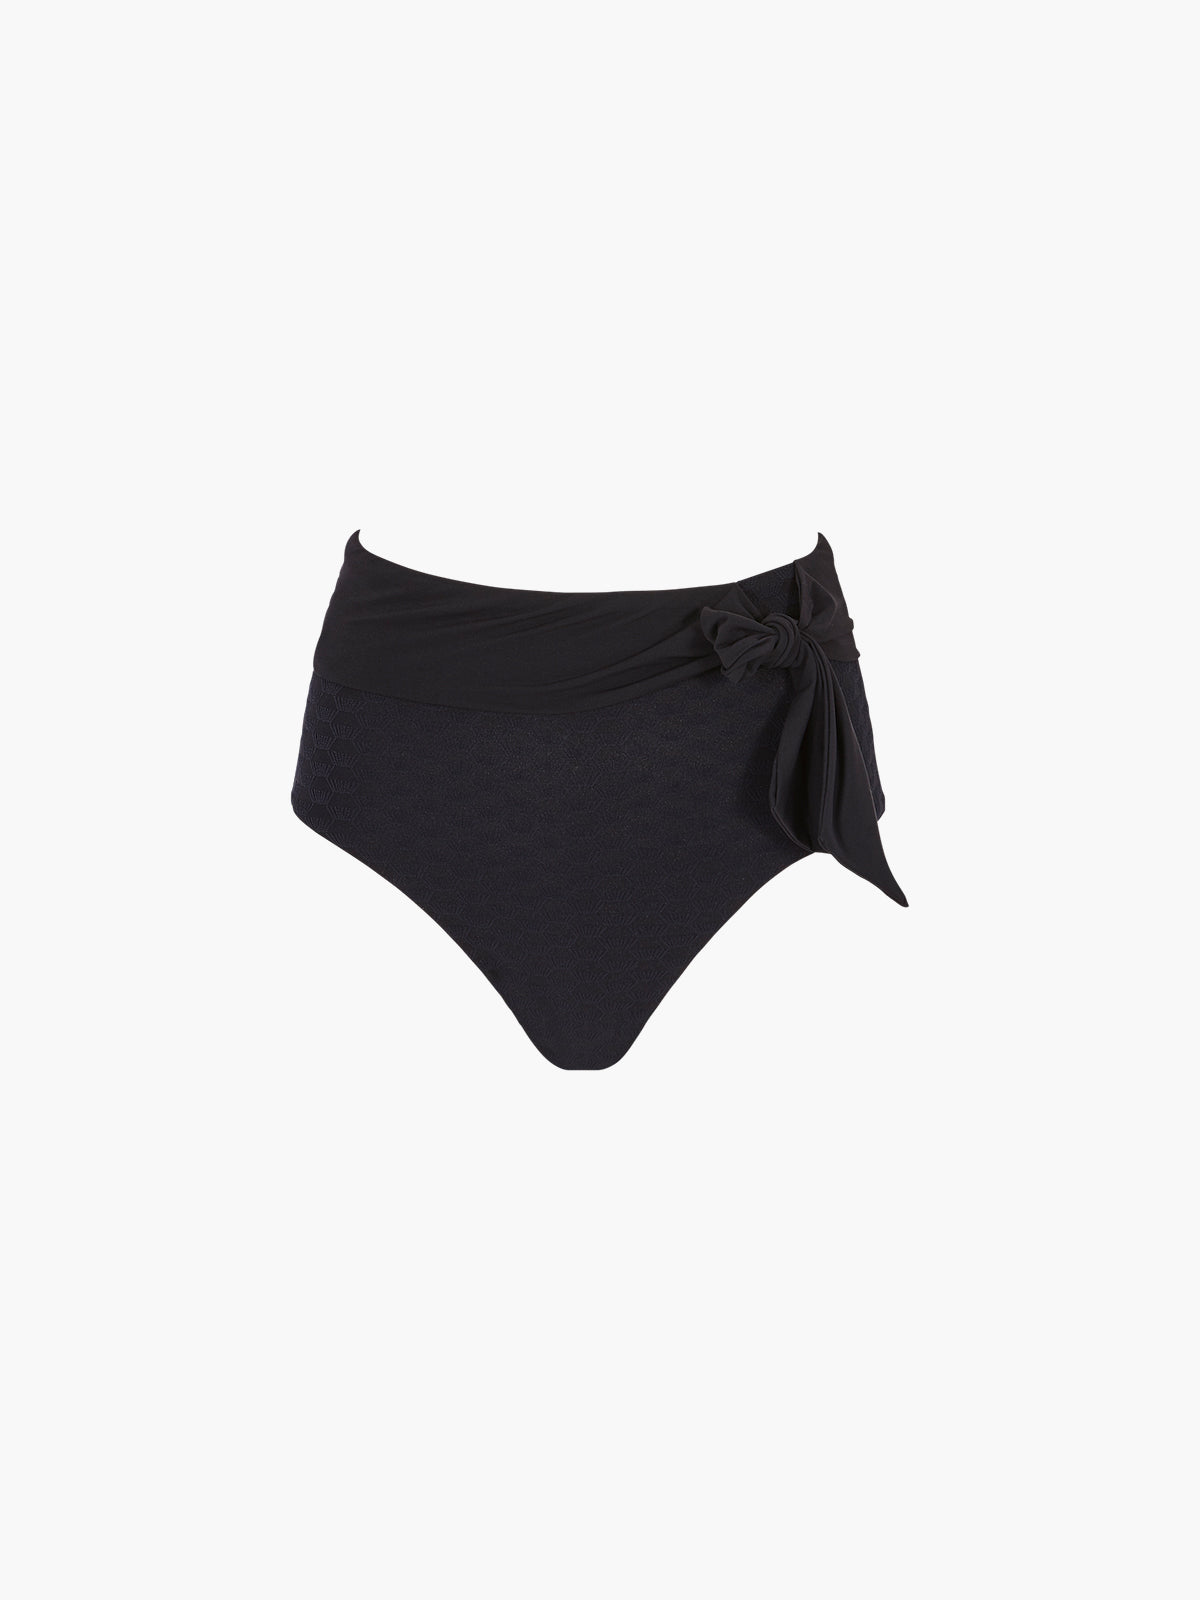 Sabine Bottoms | Black Sabine Bottoms | Black